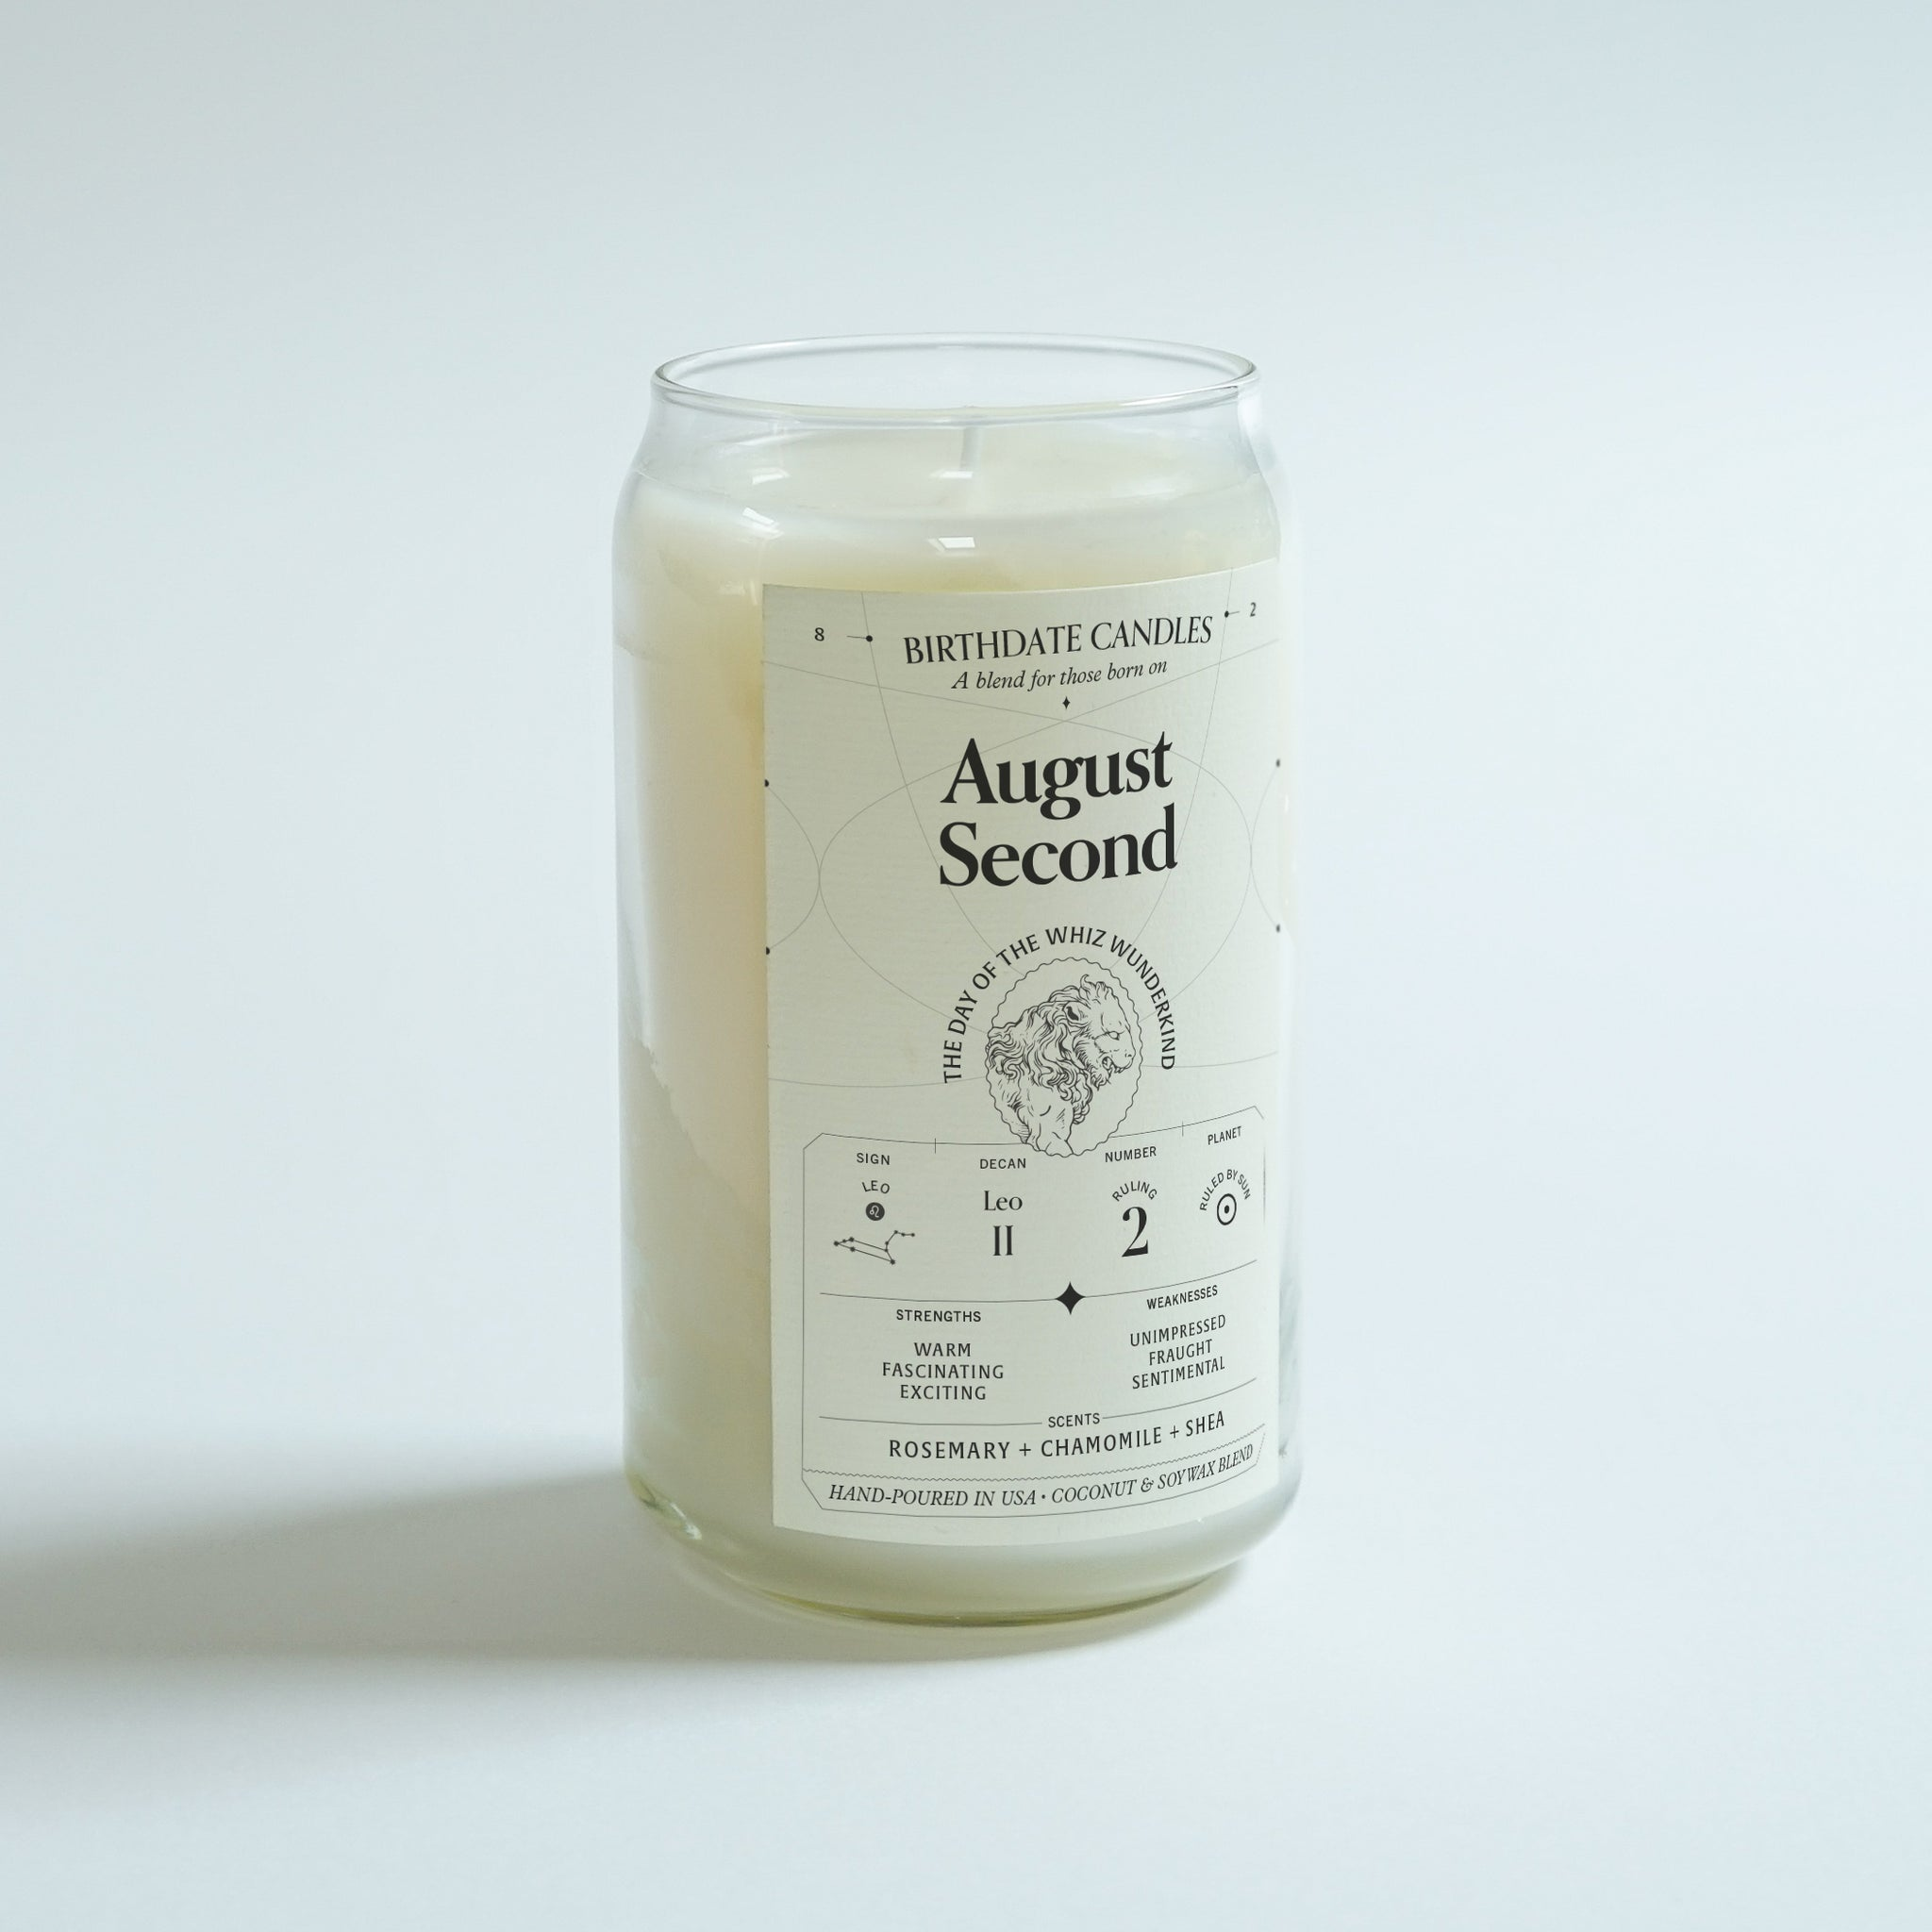 The August Second Candle